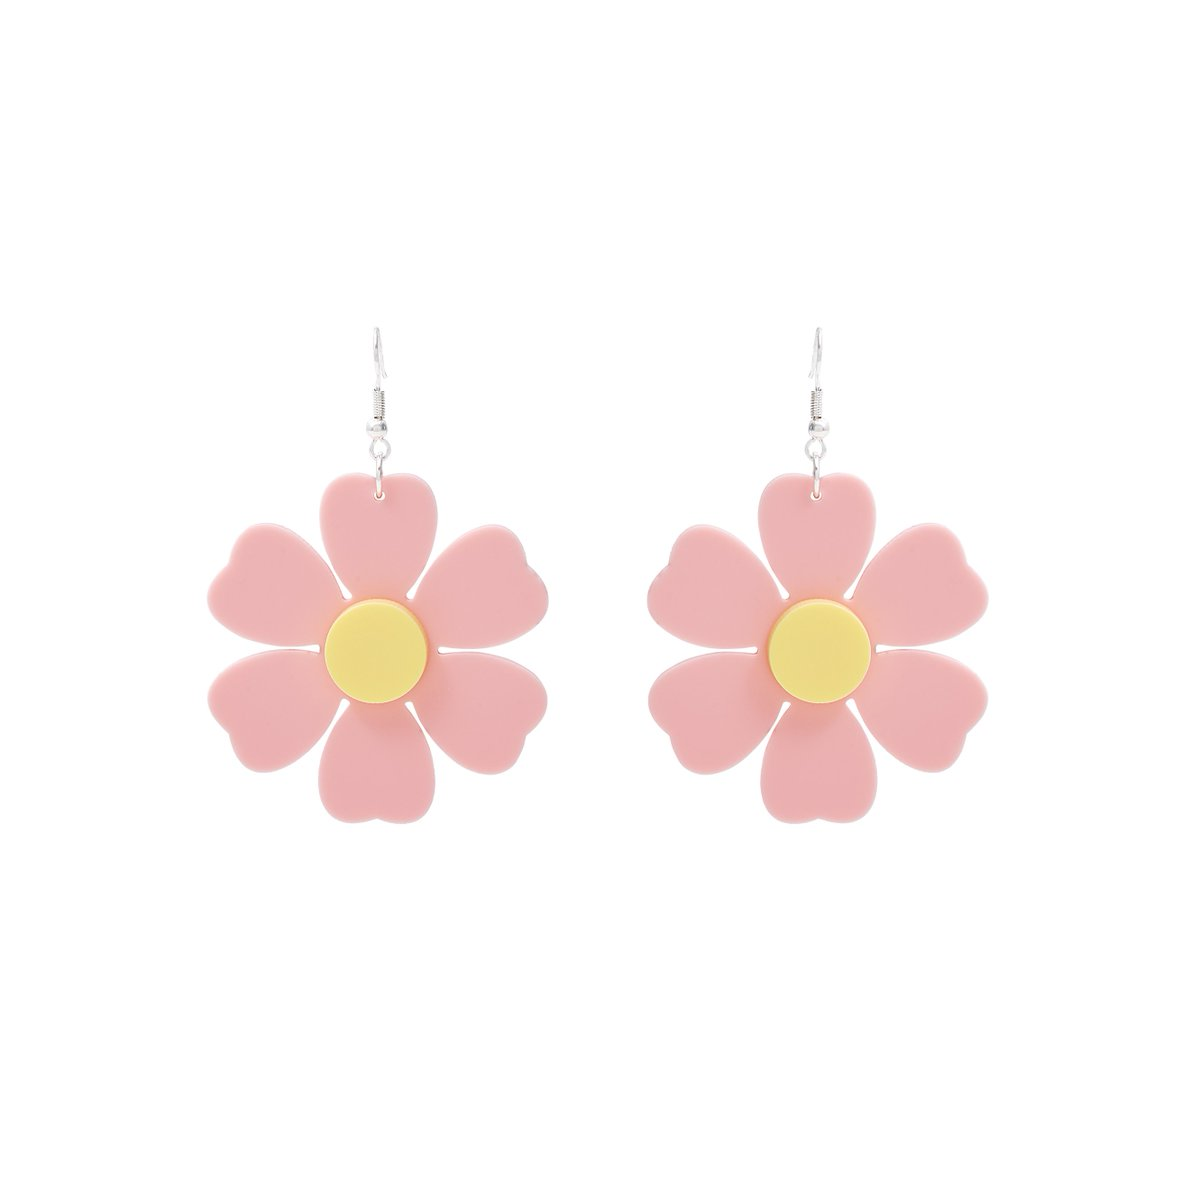 download How to